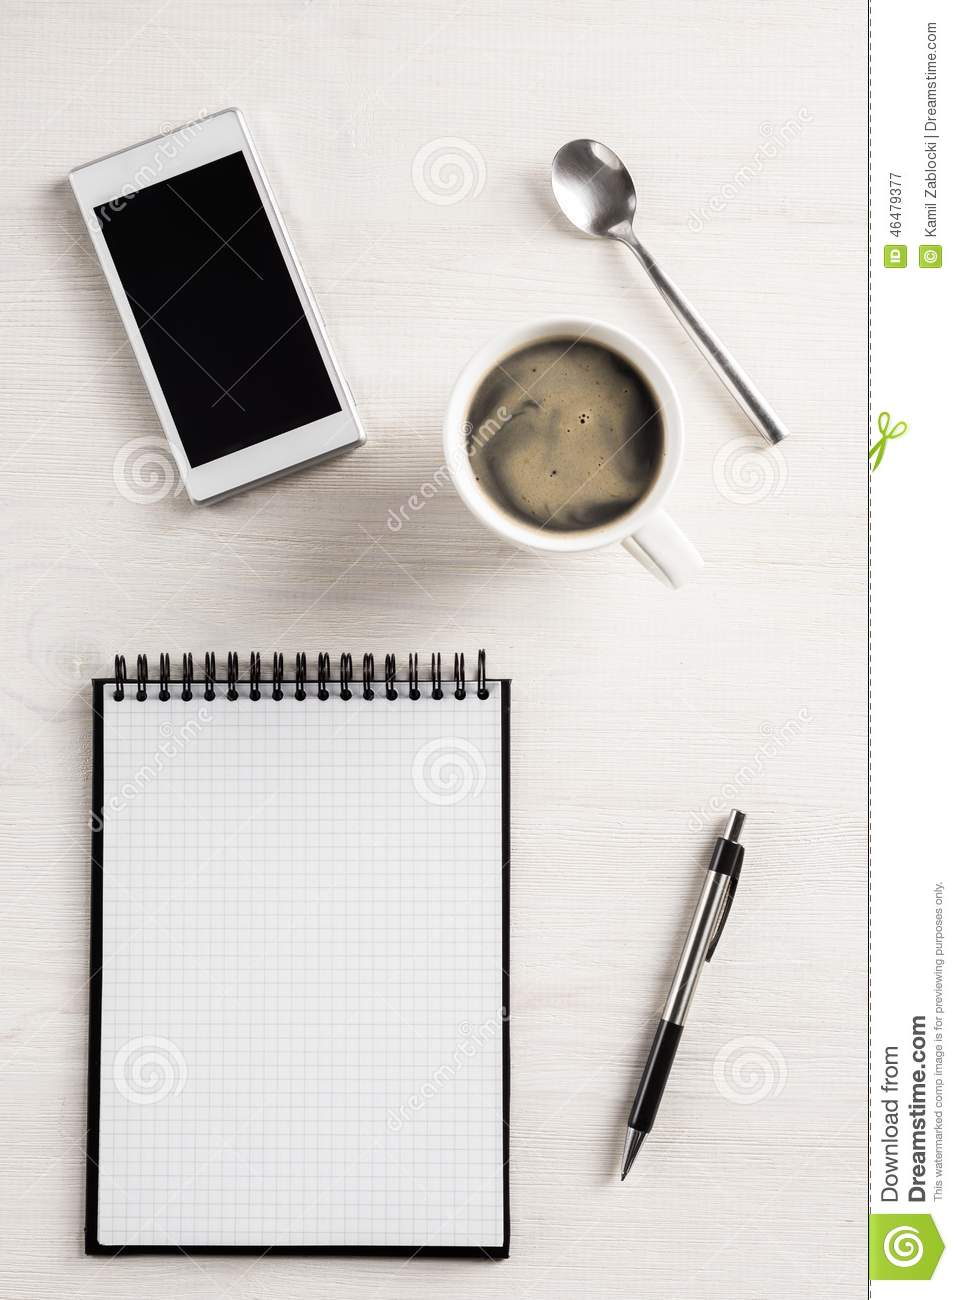 office table top. royaltyfree stock photo download office table top r